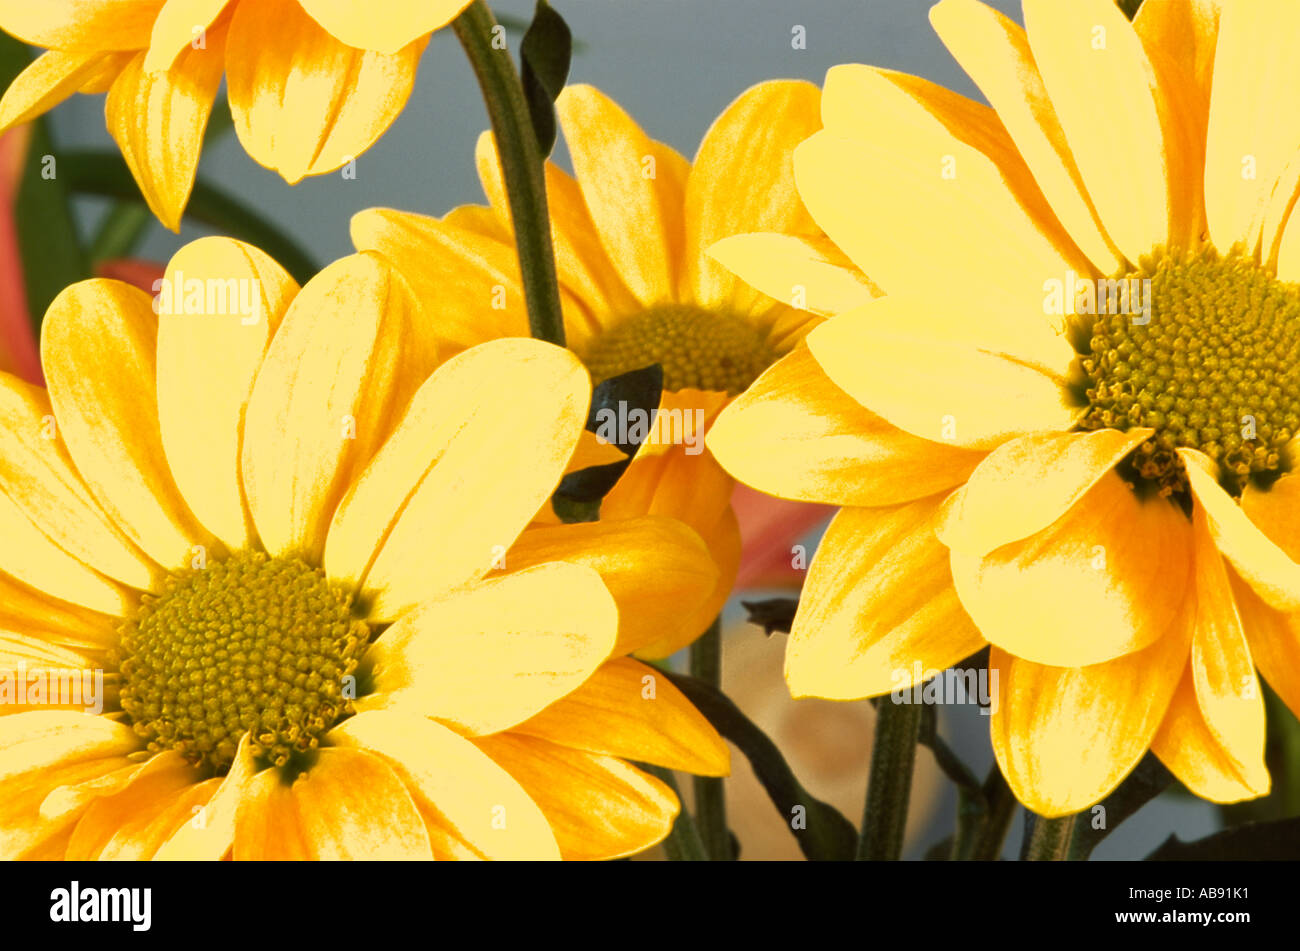 Stylised and Posterised Image of Yellow Chrysanthemums - Stock Image